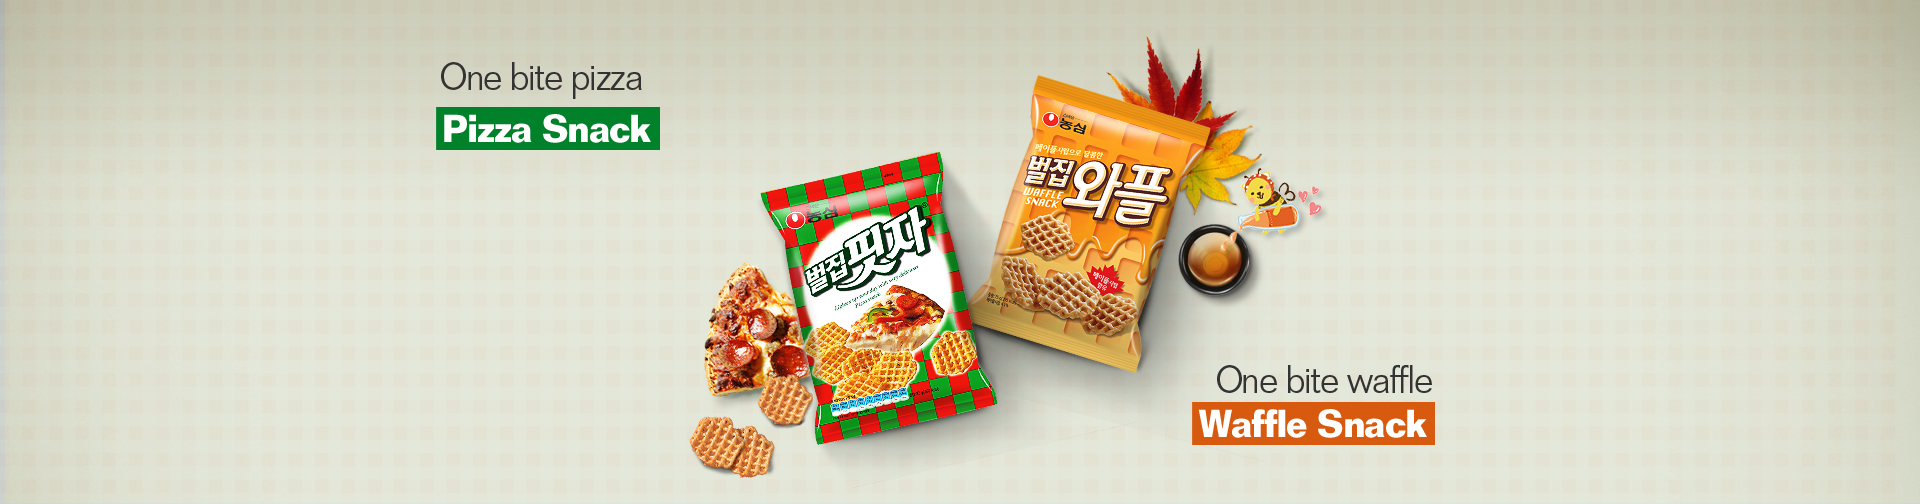 With the shape of a honeycomb and the flavor of pizza, Pizza Snack/Sweet maple syrup, Waffle Snack